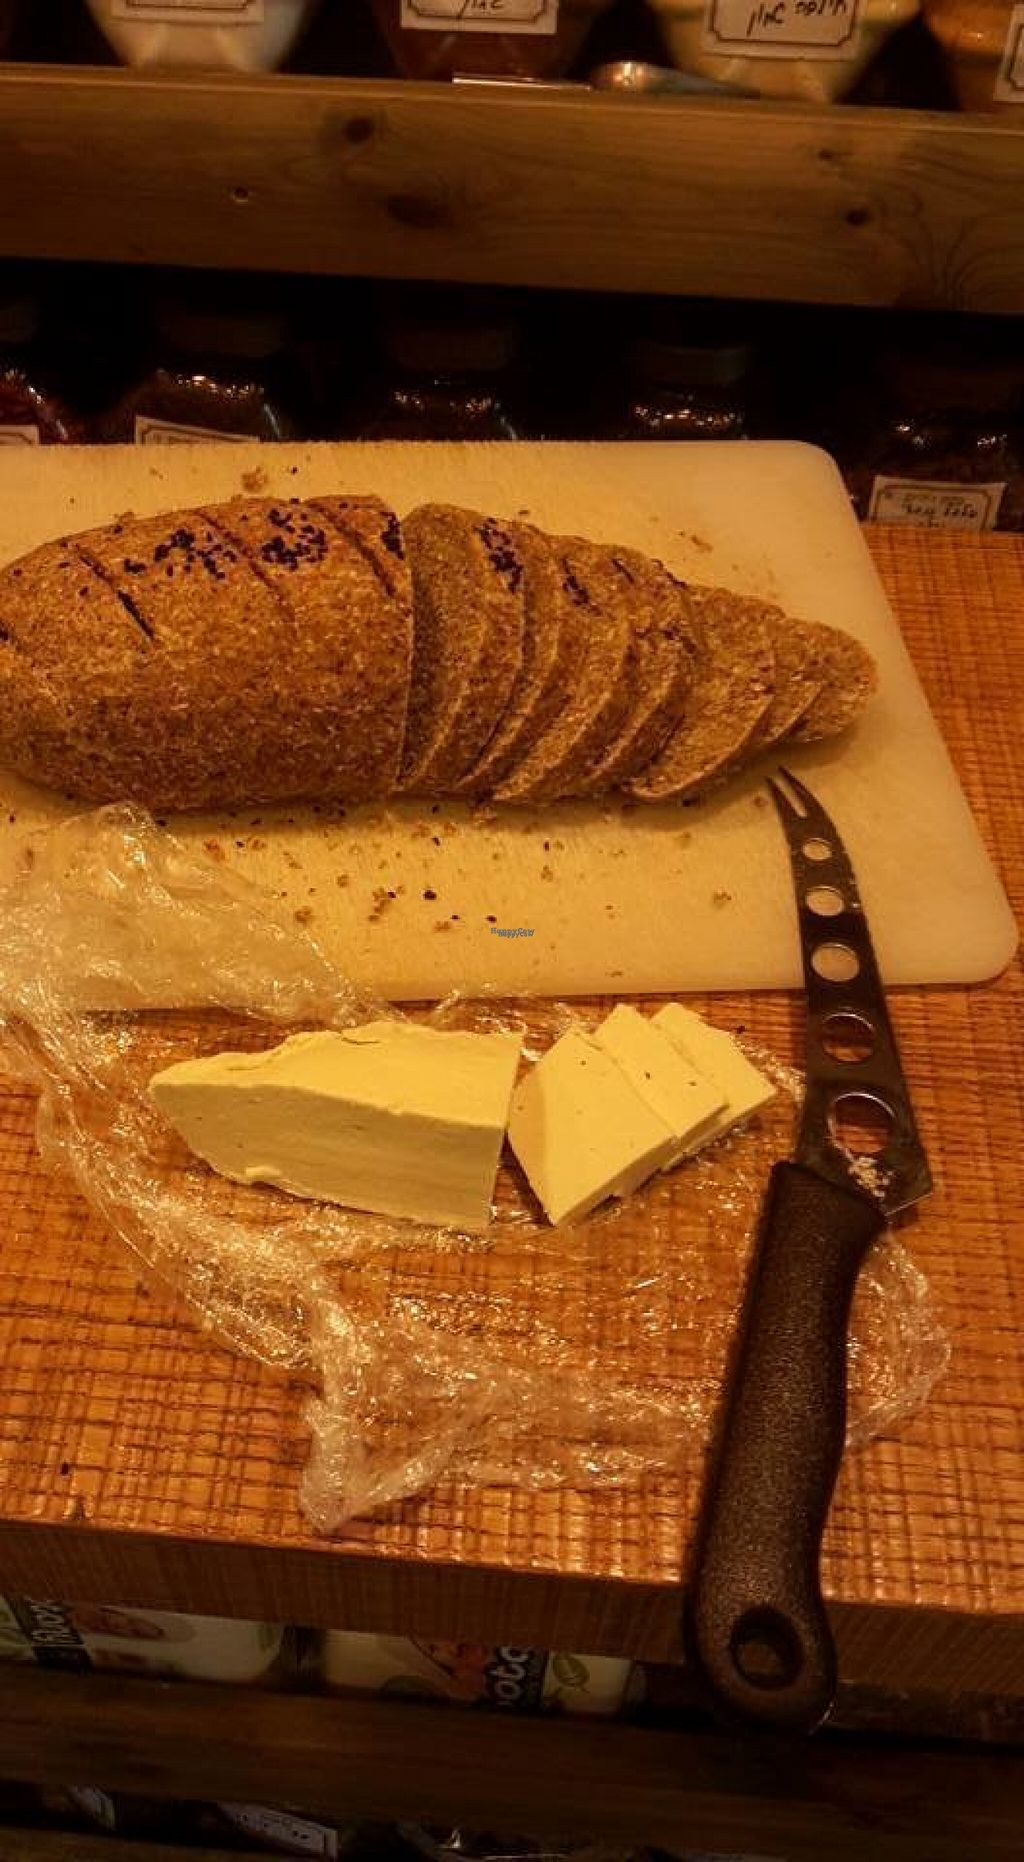 """Photo of Taam L'Chaim - Taste for Life  by <a href=""""/members/profile/Brok%20O.%20Lee"""">Brok O. Lee</a> <br/>Bread and vegan cheese <br/> August 3, 2016  - <a href='/contact/abuse/image/77845/164819'>Report</a>"""